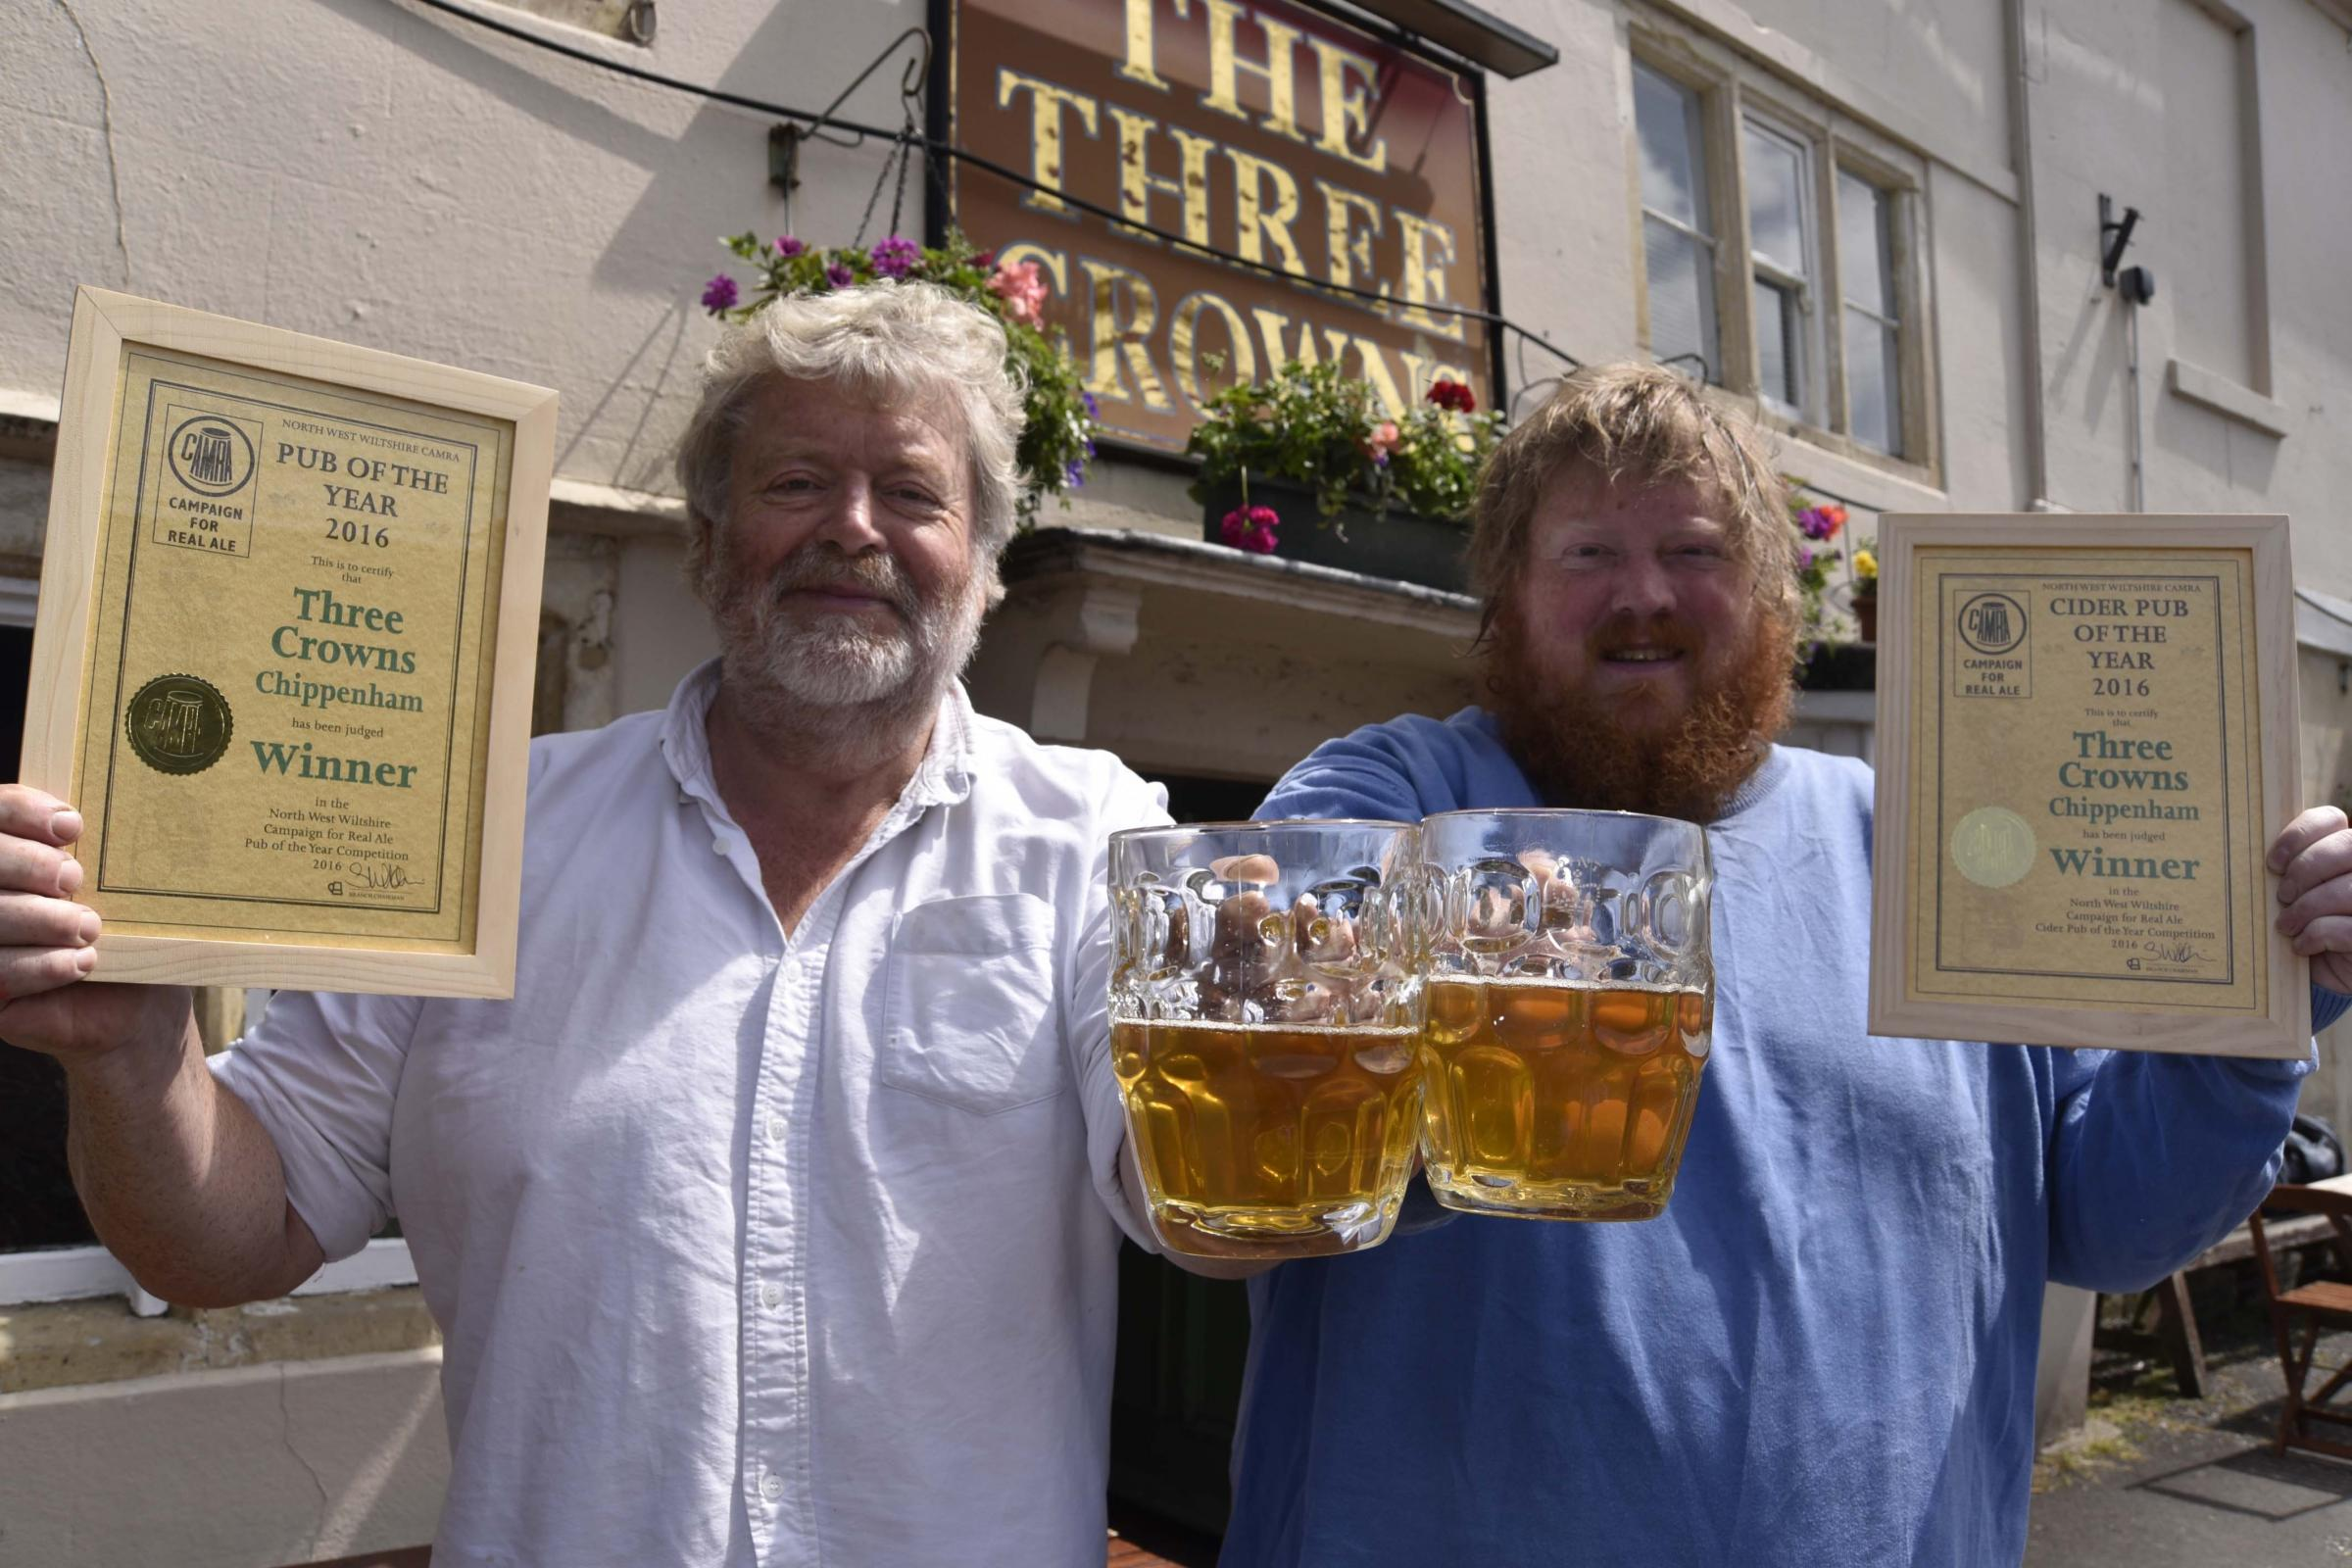 Steve Jenner and his son Tom, of the Three Crowns pub, Chippenham, with their two awards from CAMRA. Glenn Phillips  GP376-3.